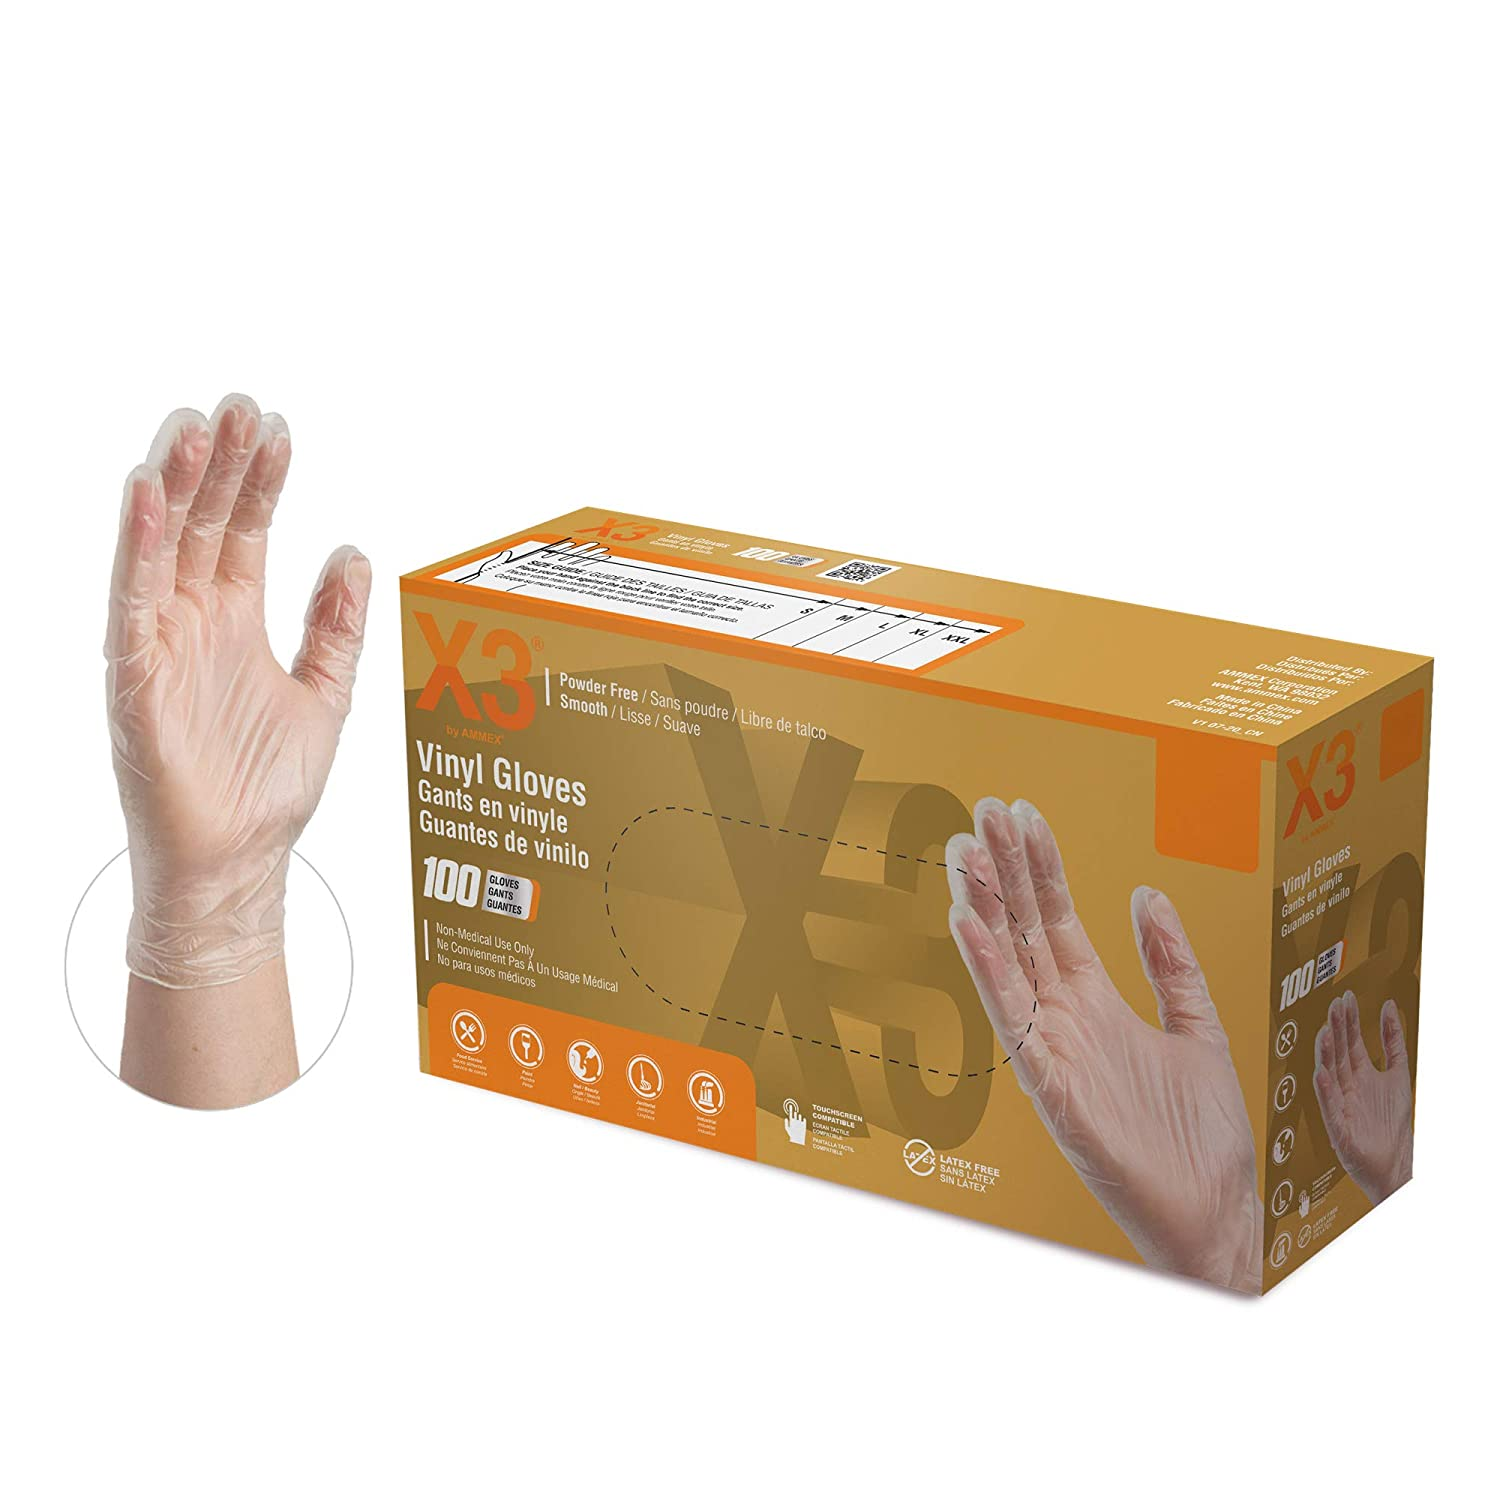 X3 Clear Vinyl Industrial Gloves, Box of 100, 3 Mil, Size Small, Latex Free, Powder Free, Food Safe, Disposable, Food Safe, GPX342100-BX